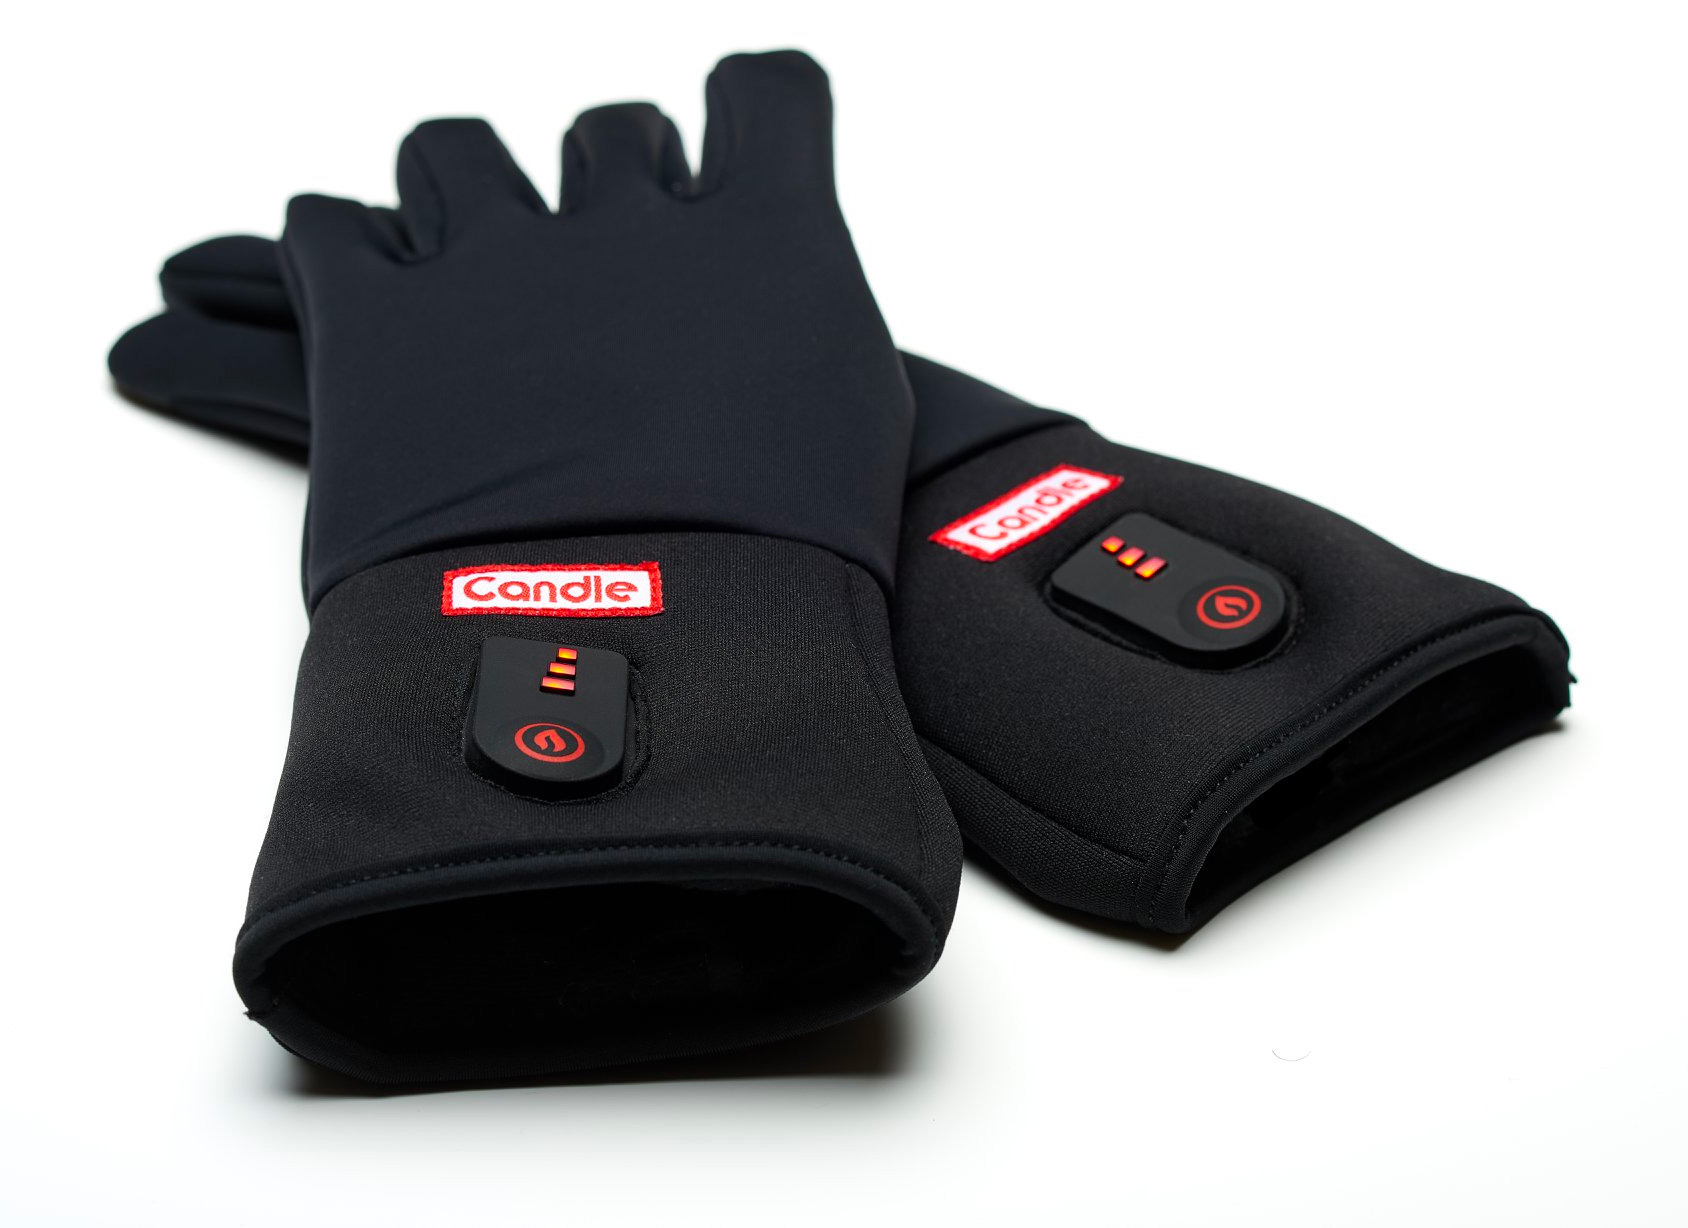 Winter Cold is No Match for Candle's Battery-Powered Gloves at werd.com